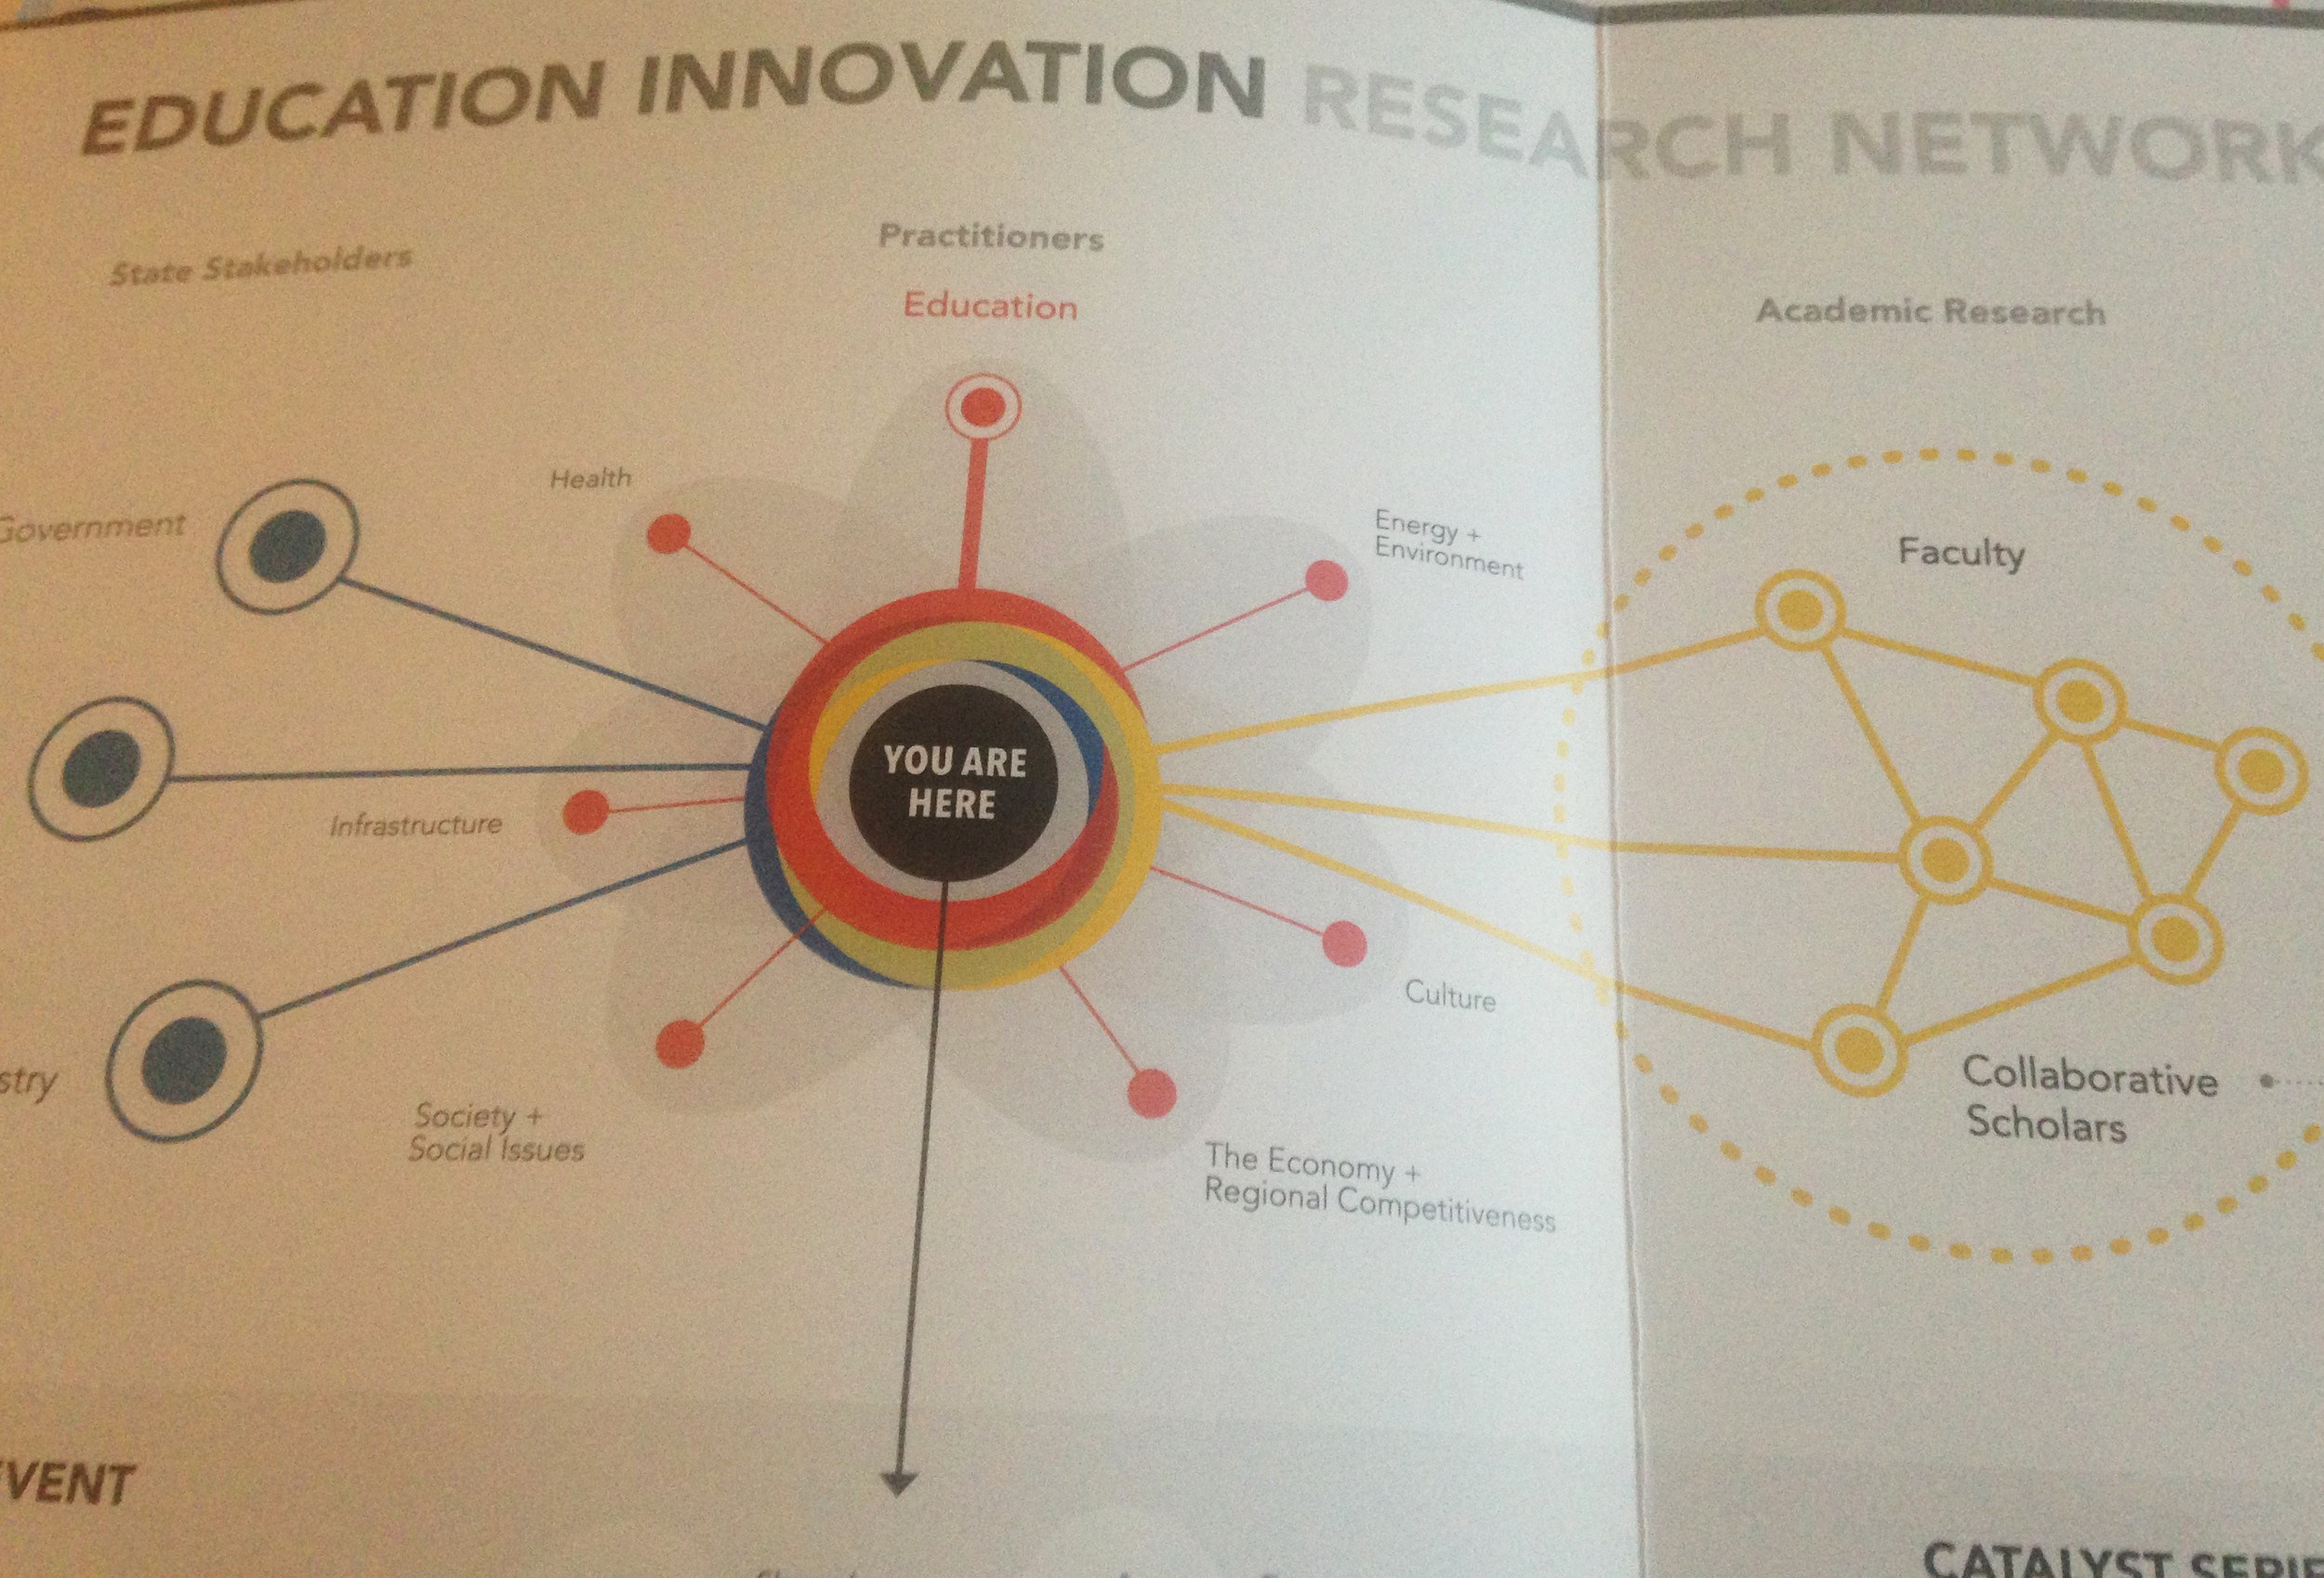 A schematic drawing of the interactions envisioned under the newly launched Education Innovation Research Network.